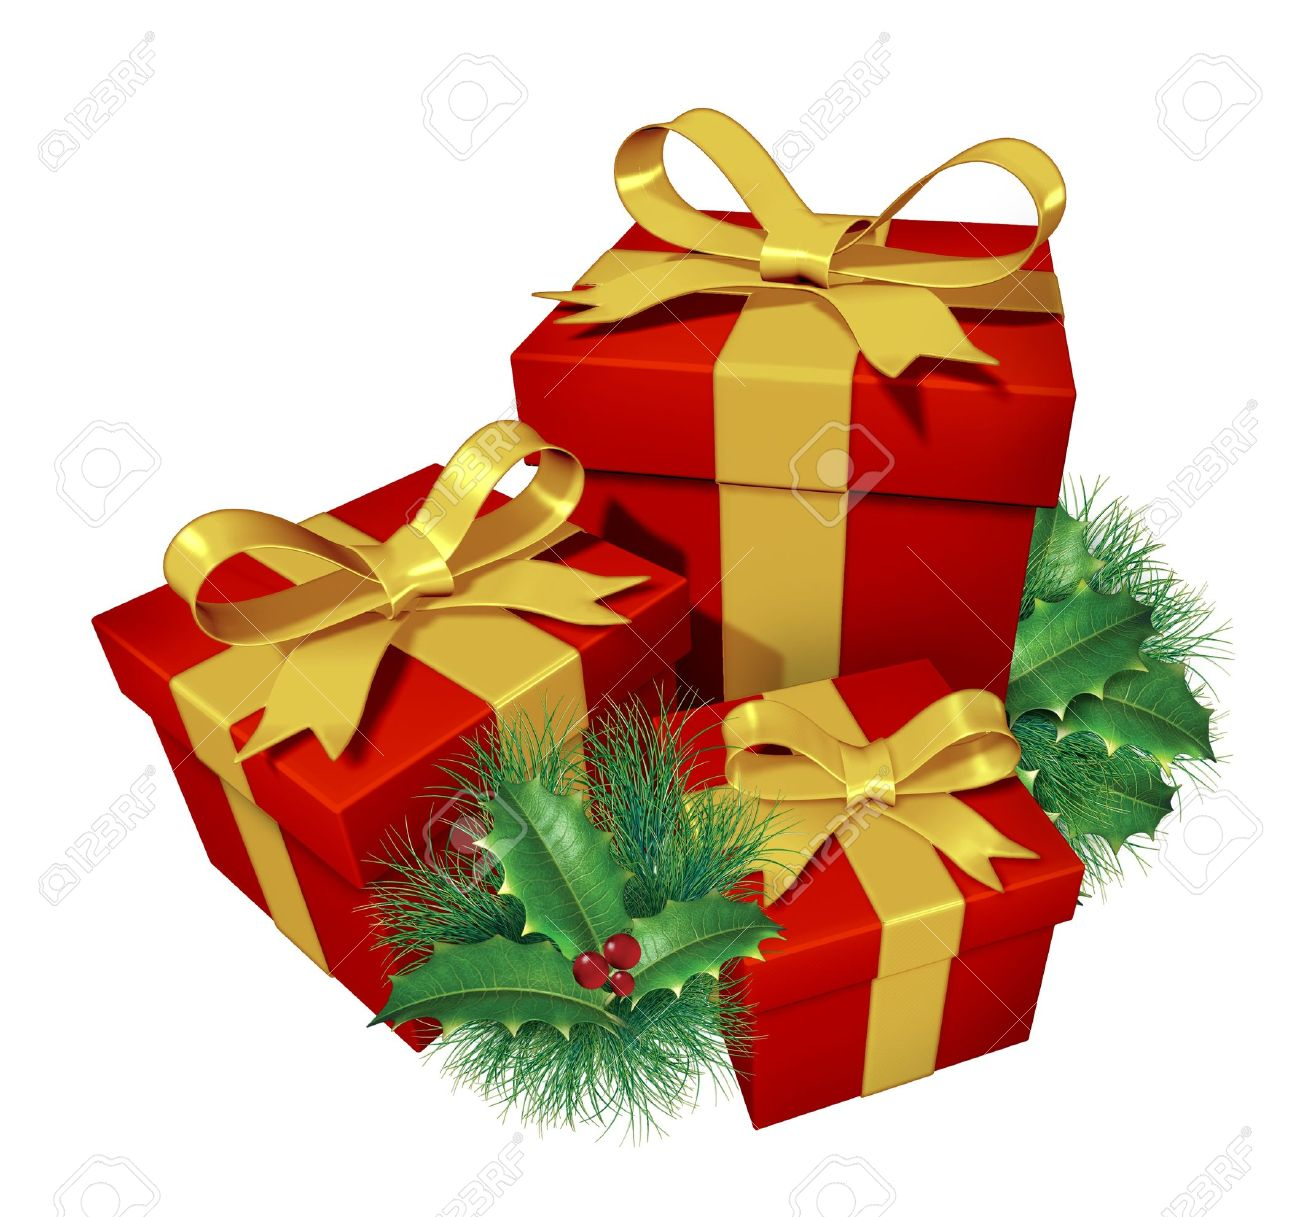 Christmas Gifts With Pine Holly Showing Red Presents And Blue ...